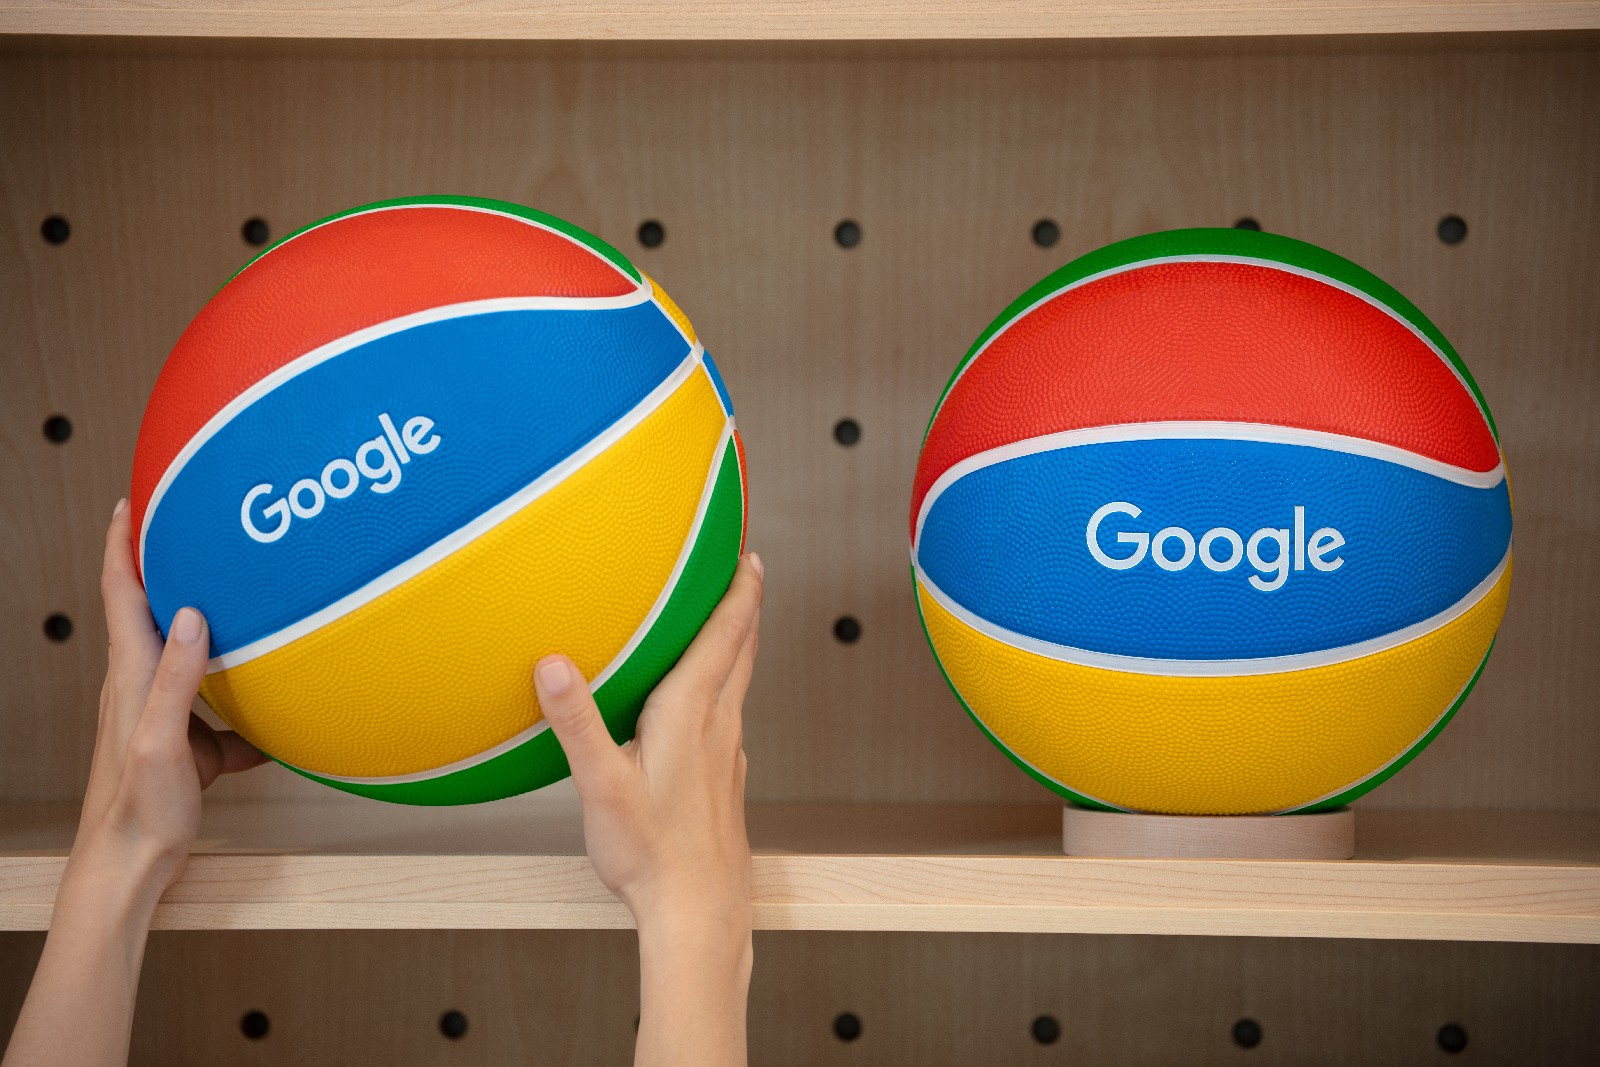 <p>Google Store Chelsea. A pair of Google-branded basketballs on a store shelf.</p>